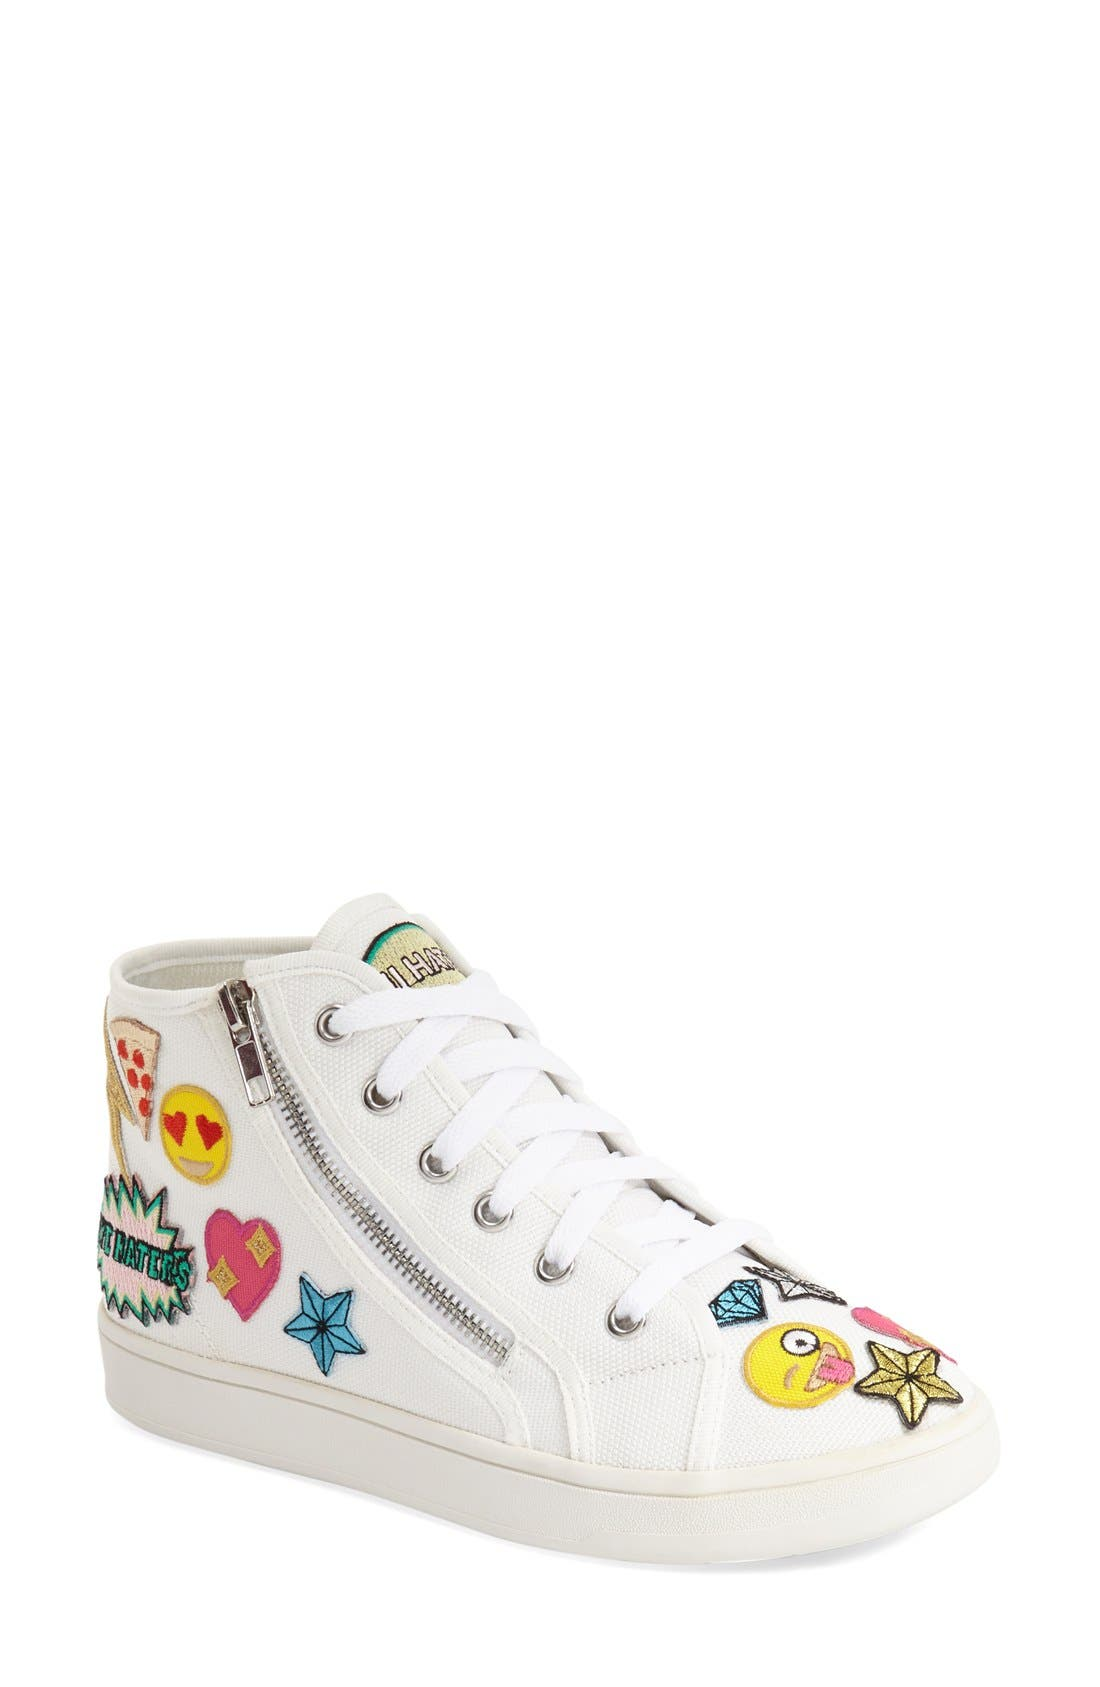 Main Image - Steve Madden 'Cobrah' High Top Sneaker (Women)